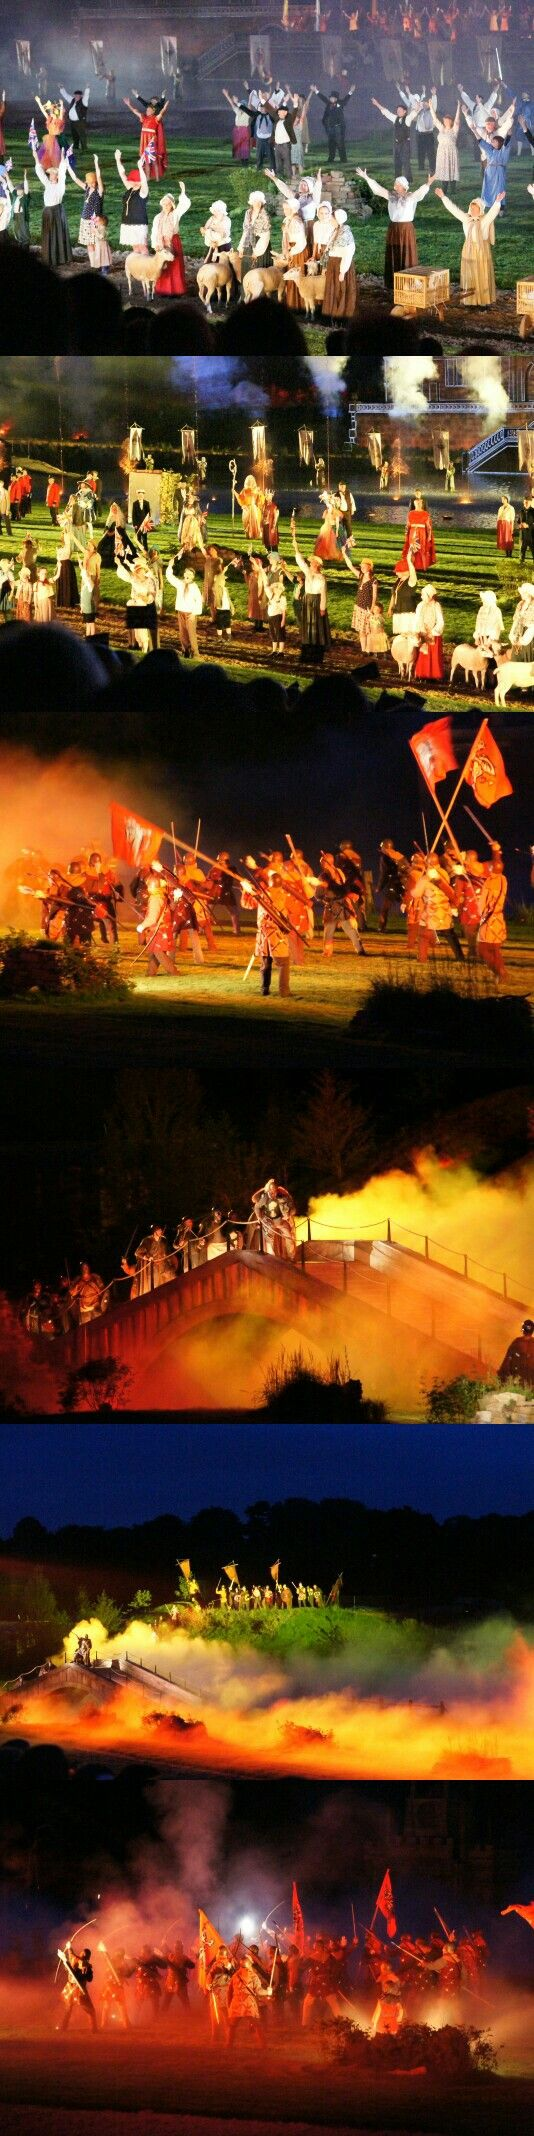 Kynren. The most amazing show I've ever seen. A quite stunning spectacle. Bishop Auckland. Durham. August 2016.